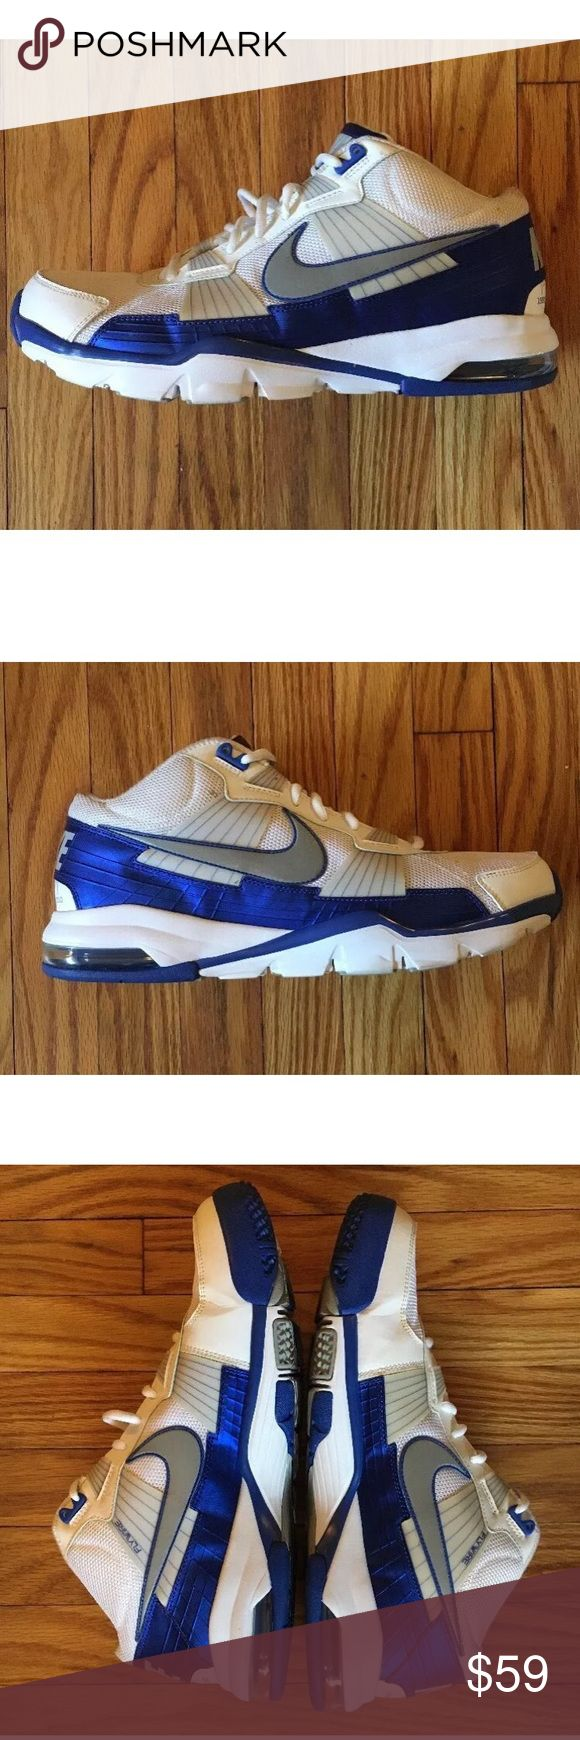 Mens 13 Nike Trainer SC Grey Royal 386484 102 Mens Size 13 Nike Trainer SC 2010 White Grey Royal 386484 102  Minimal, visible wear. Excellent condition, minor blemishes that can be removed or improved with a quick clean. Structurally sound. Insoles have been replaced and have some life left in them. Please see photos for details or message with questions and for additional information, thanks! Nike Shoes Sneakers